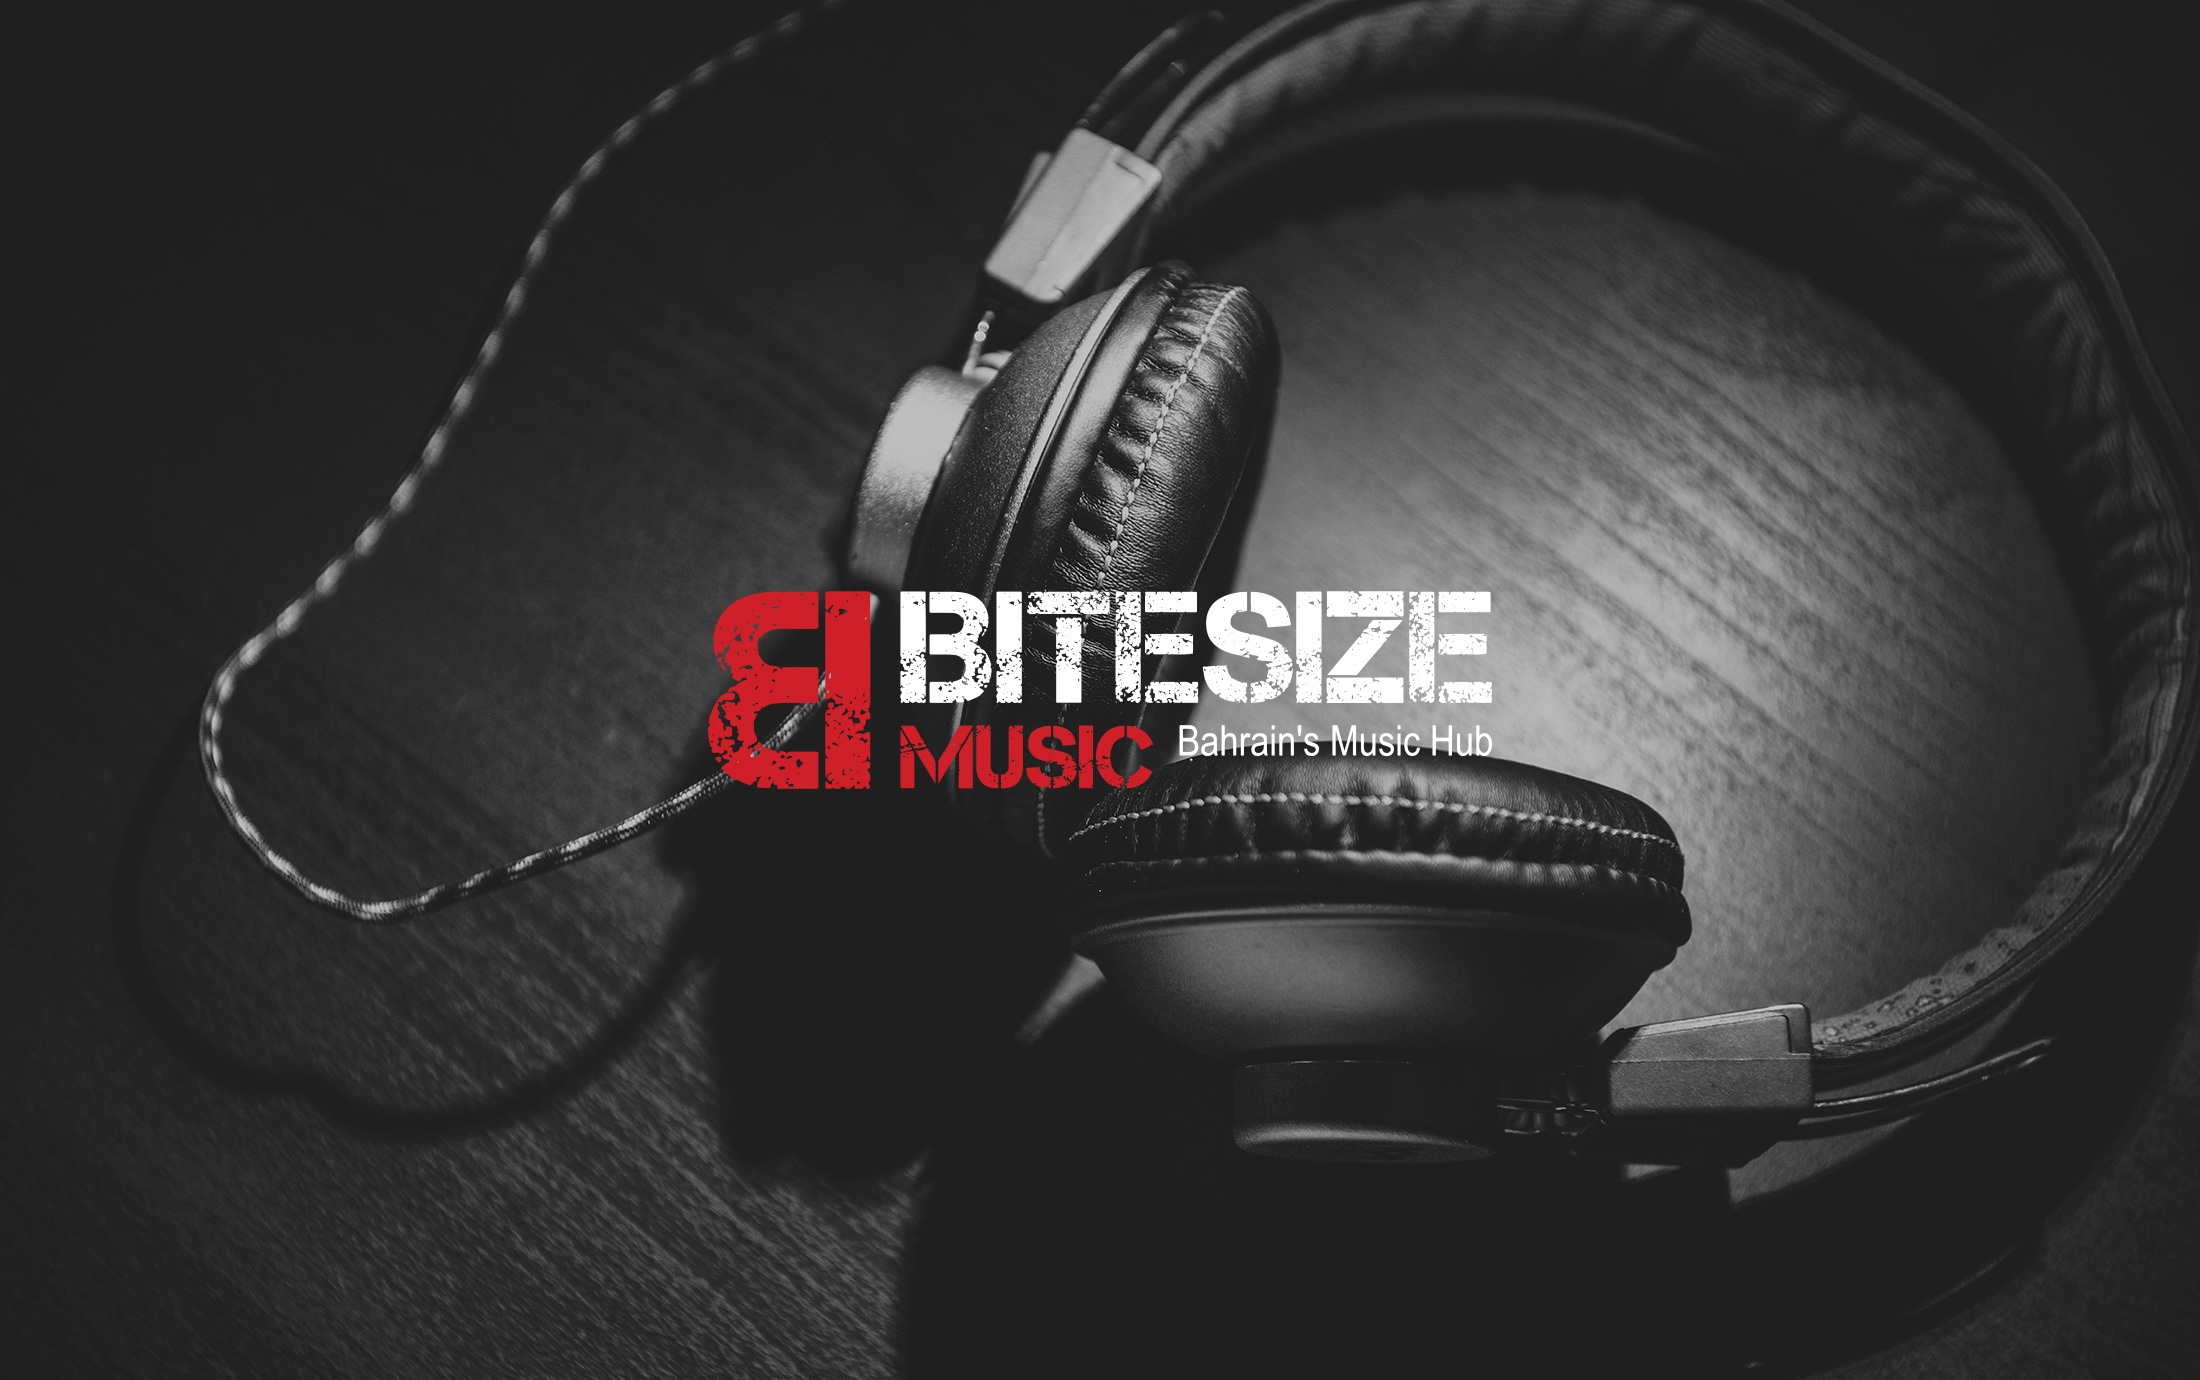 Custom website design and development services for Bitesize Music by Reform Design, Cyprus.